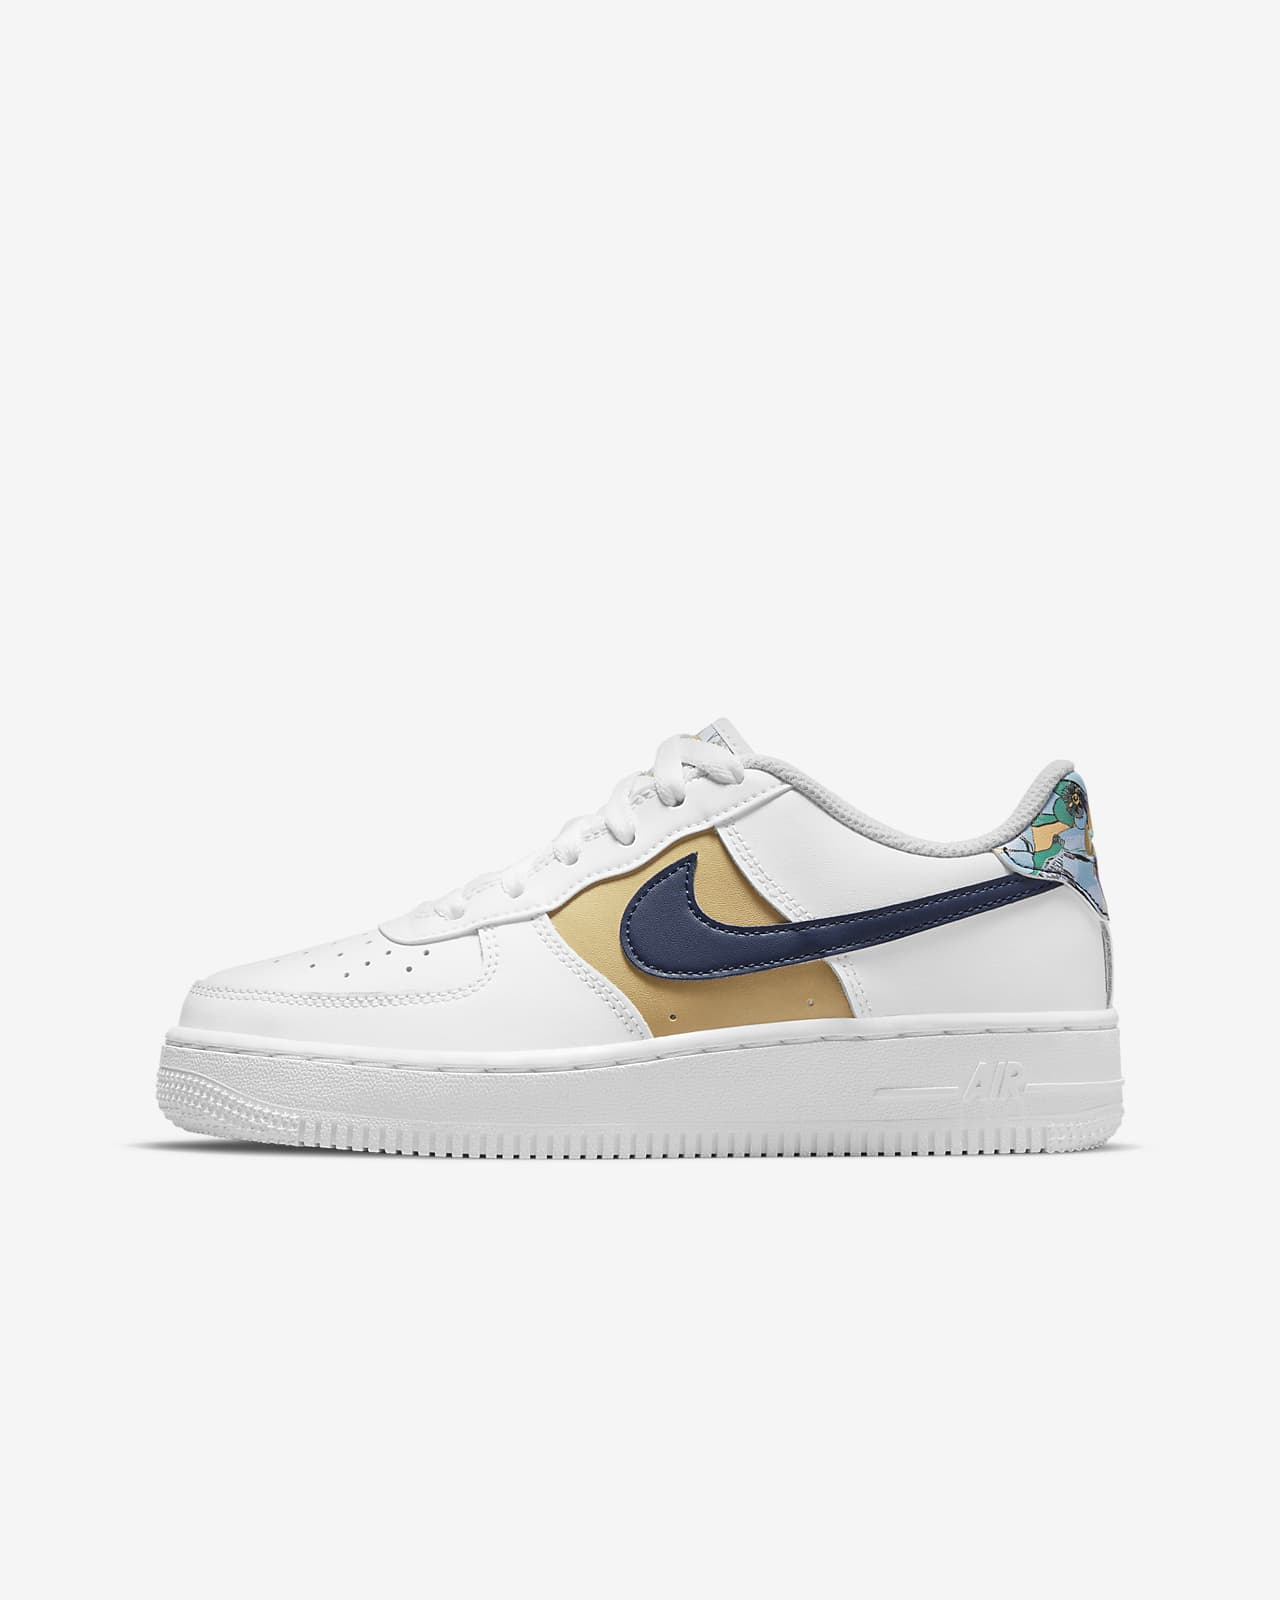 Nike Air Force 1 Low LV8 Older Kids' Shoes